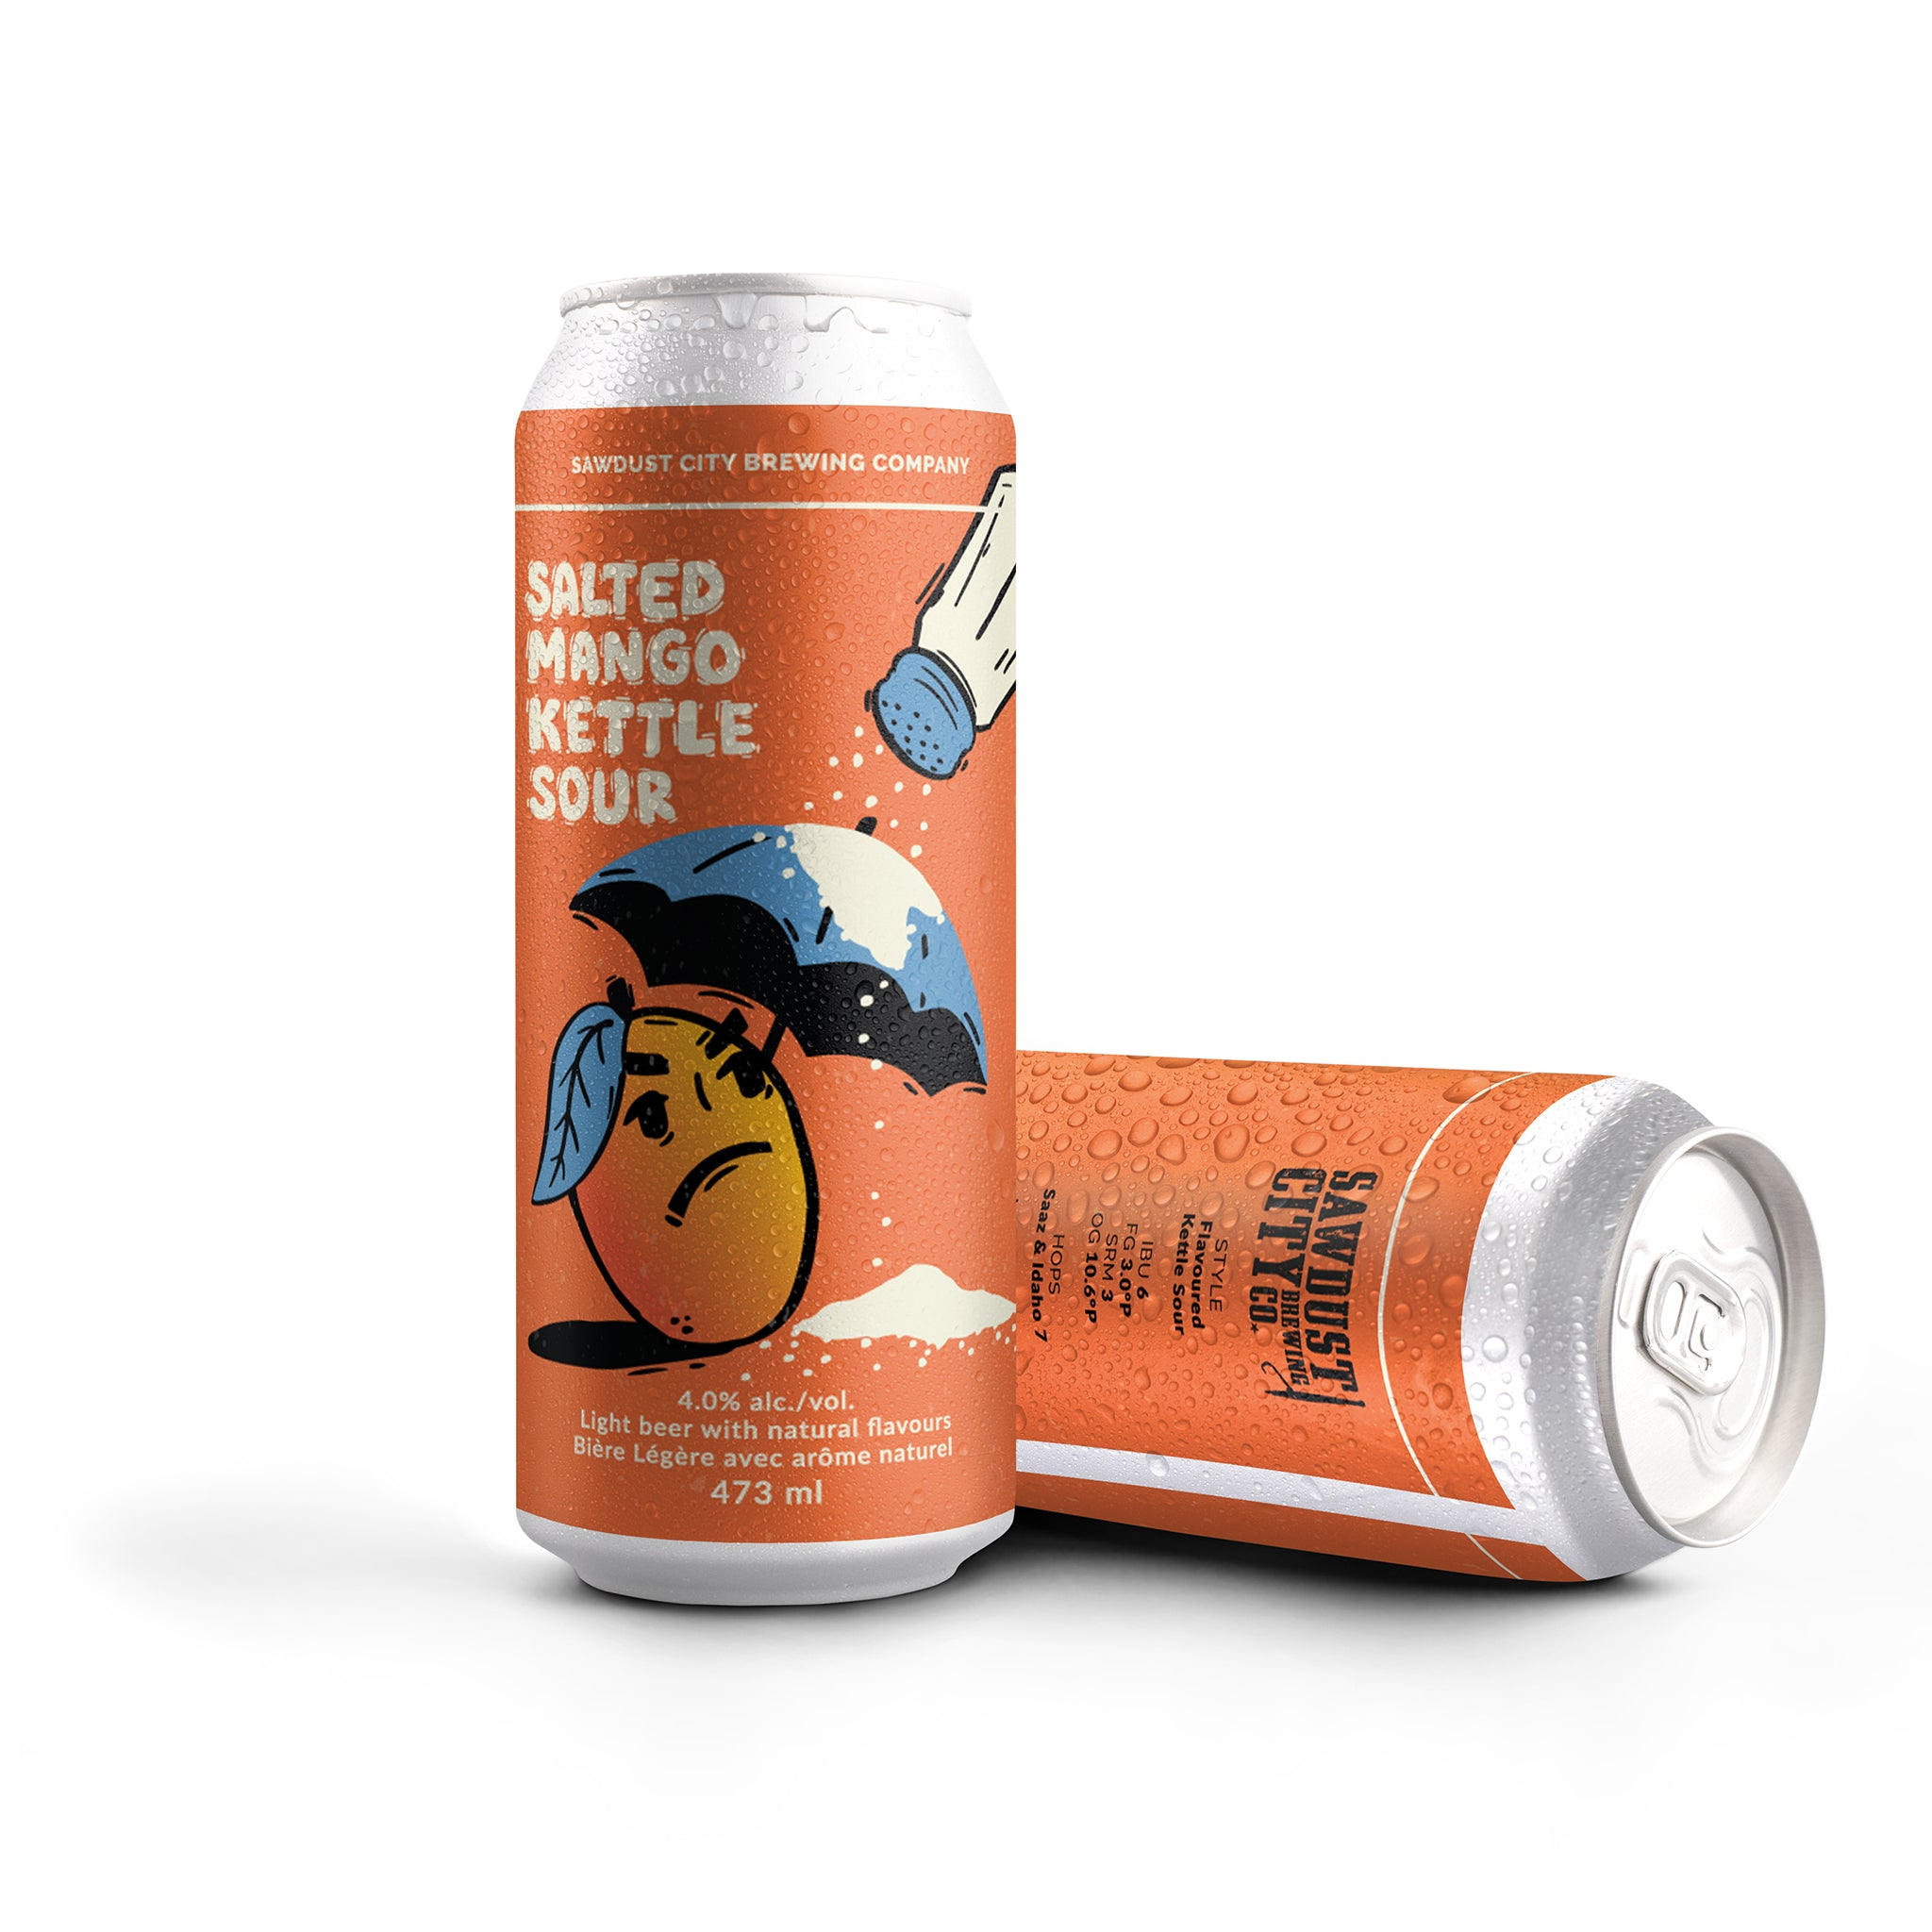 Salted Mango Kettle Sour